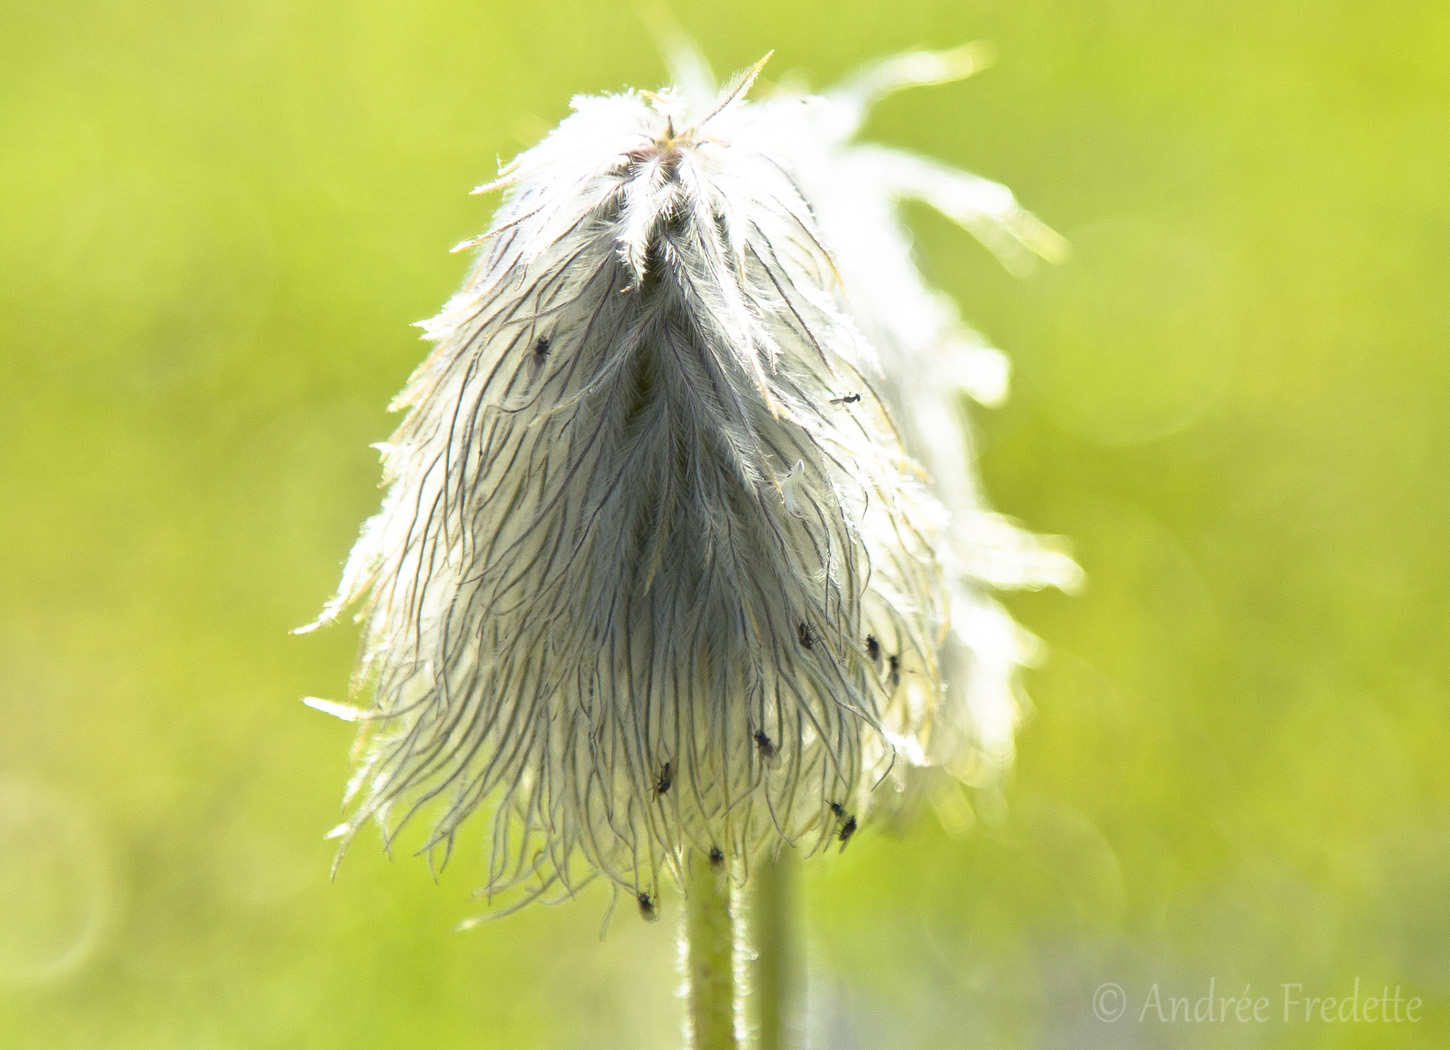 Seedhead of Western Pasque flower (Anemone occidentalis). Photo by Andrée Fredette